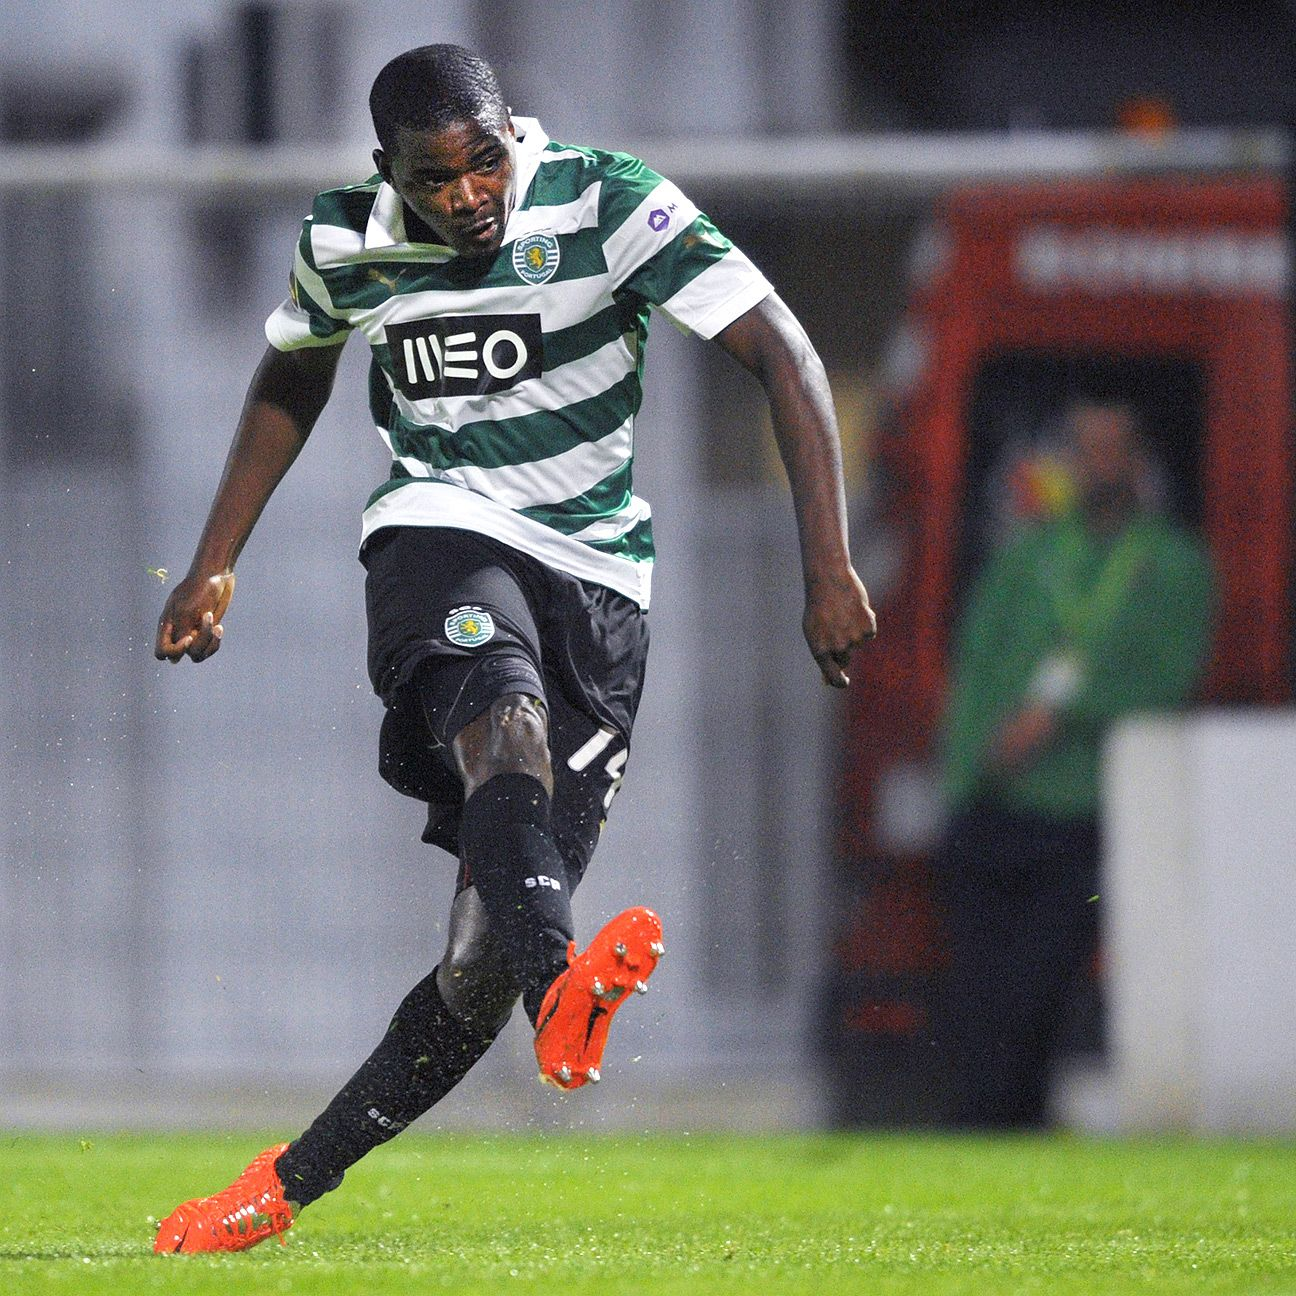 Carvalho's explosive season in Portugal has put him on various clubs' transfer radars.